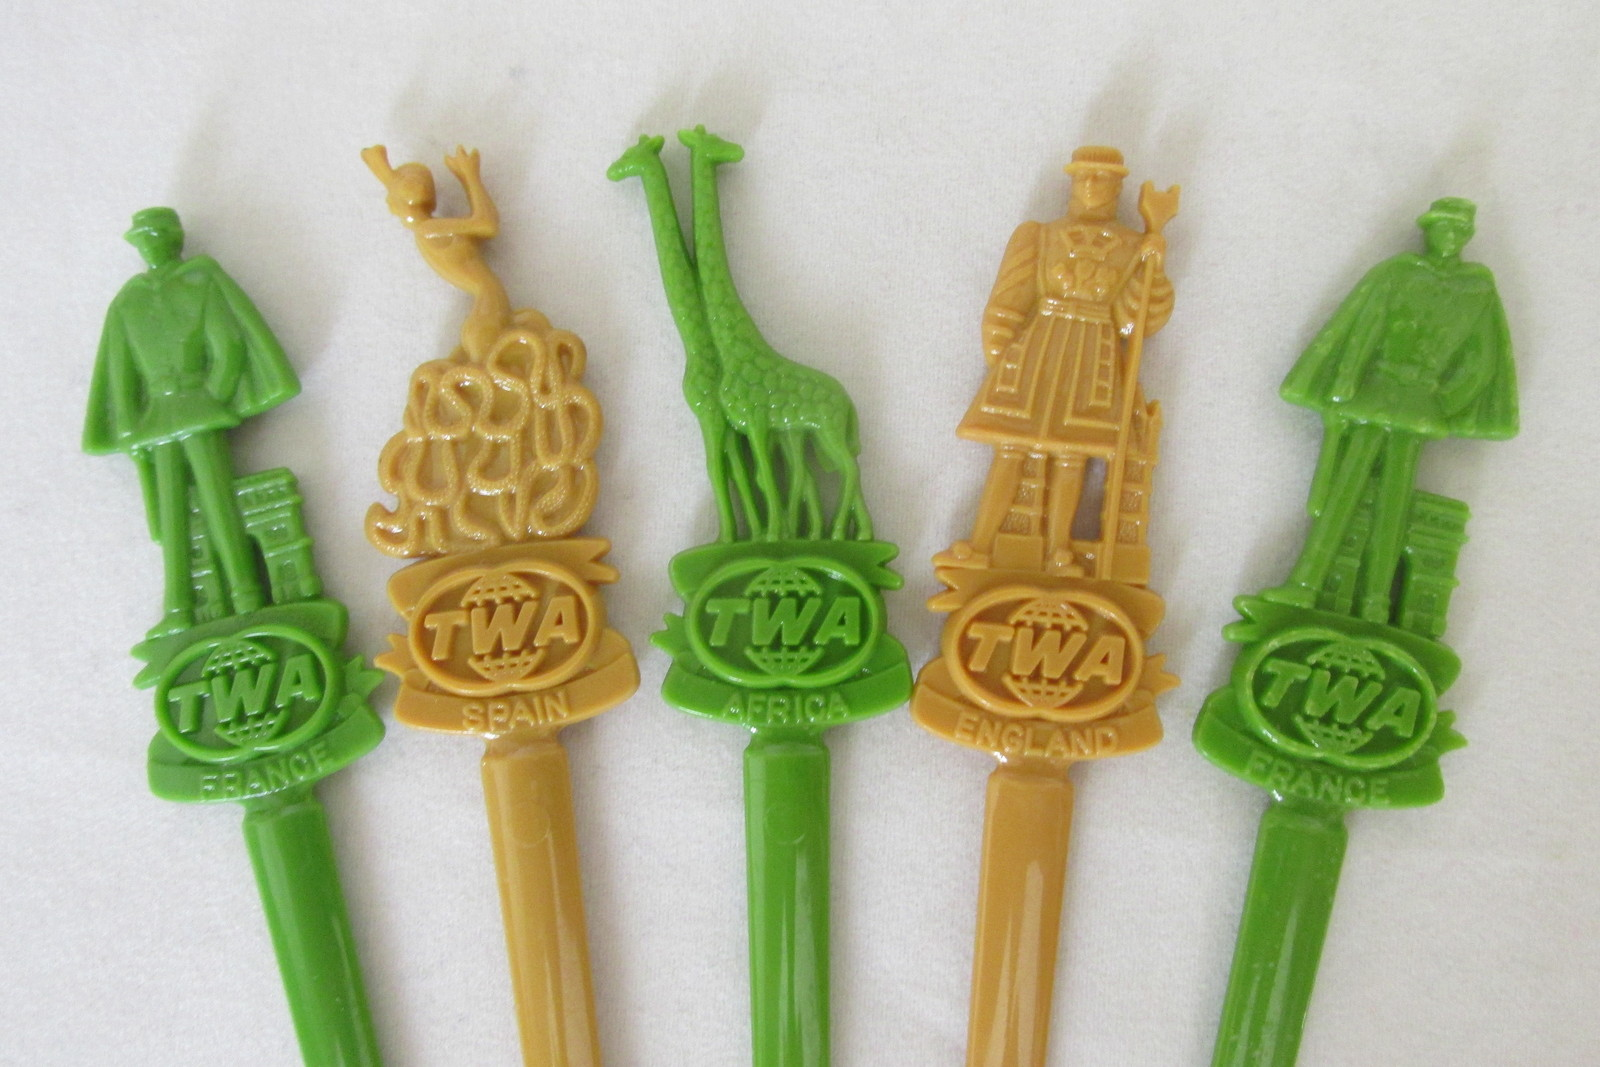 Lot of Vintage Swizzle Sticks from Airlines and Foreign Countries